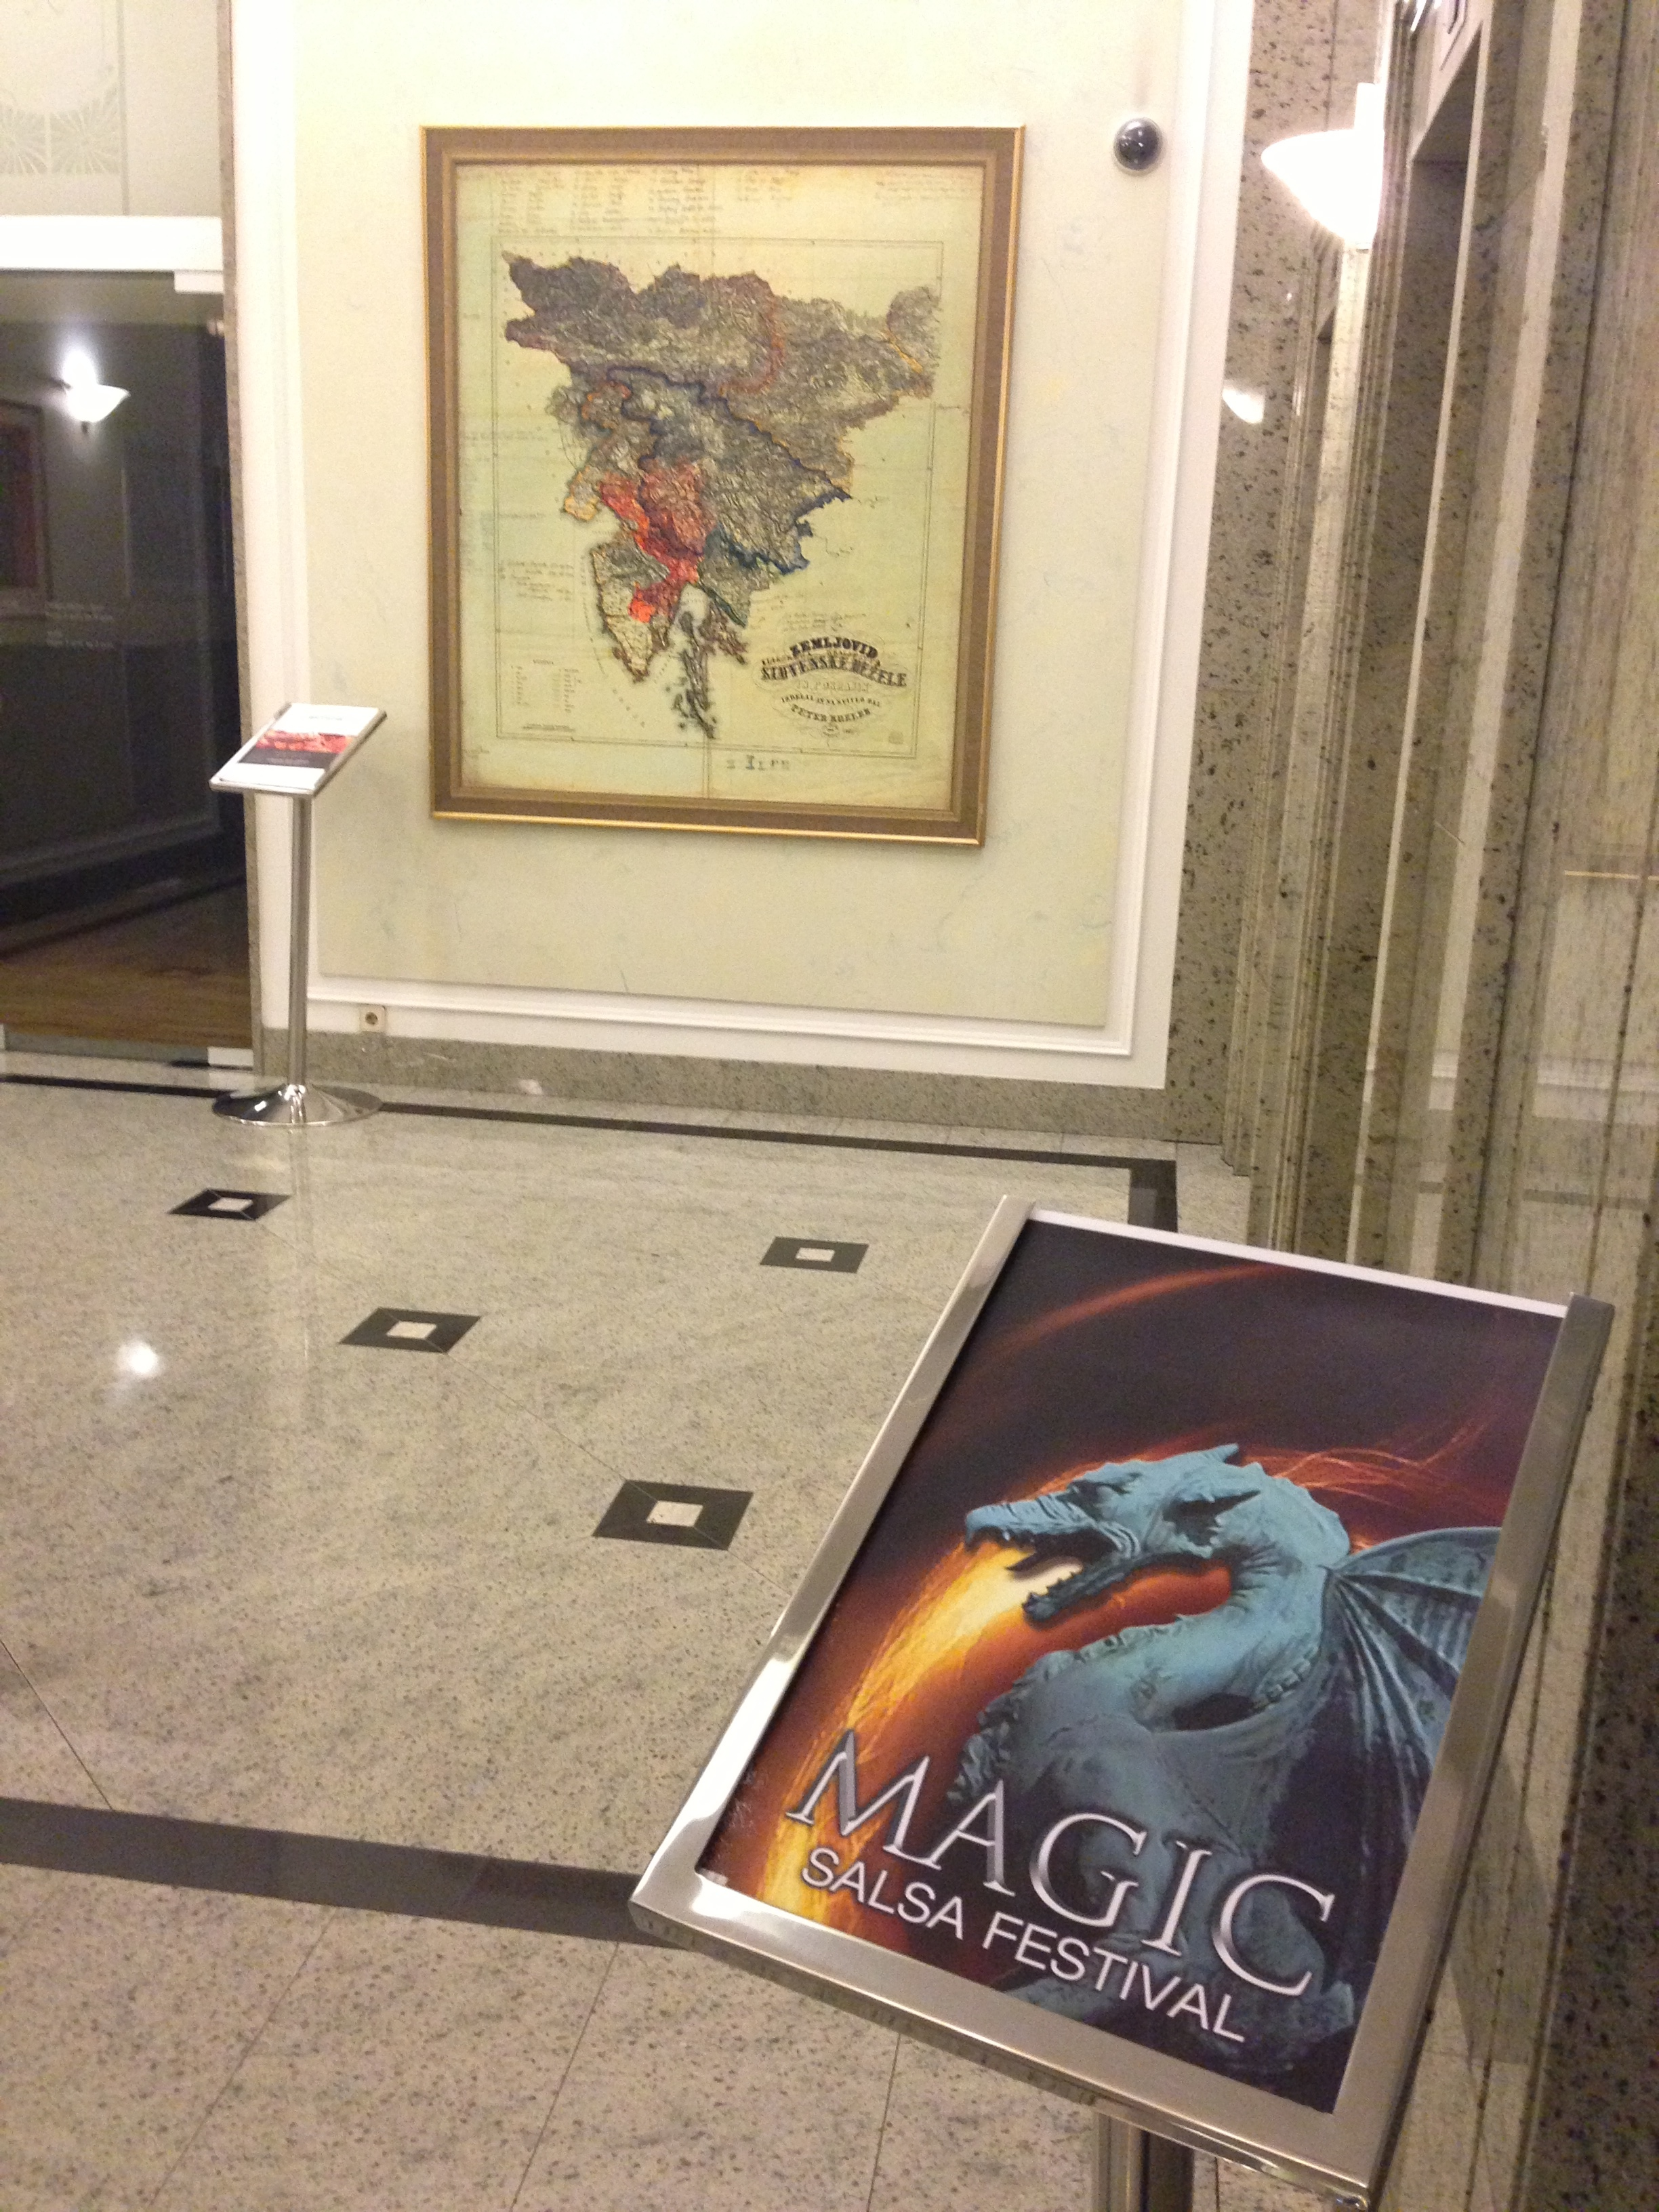 maps, monsters, and magic  juxtaposed in Ljubljana